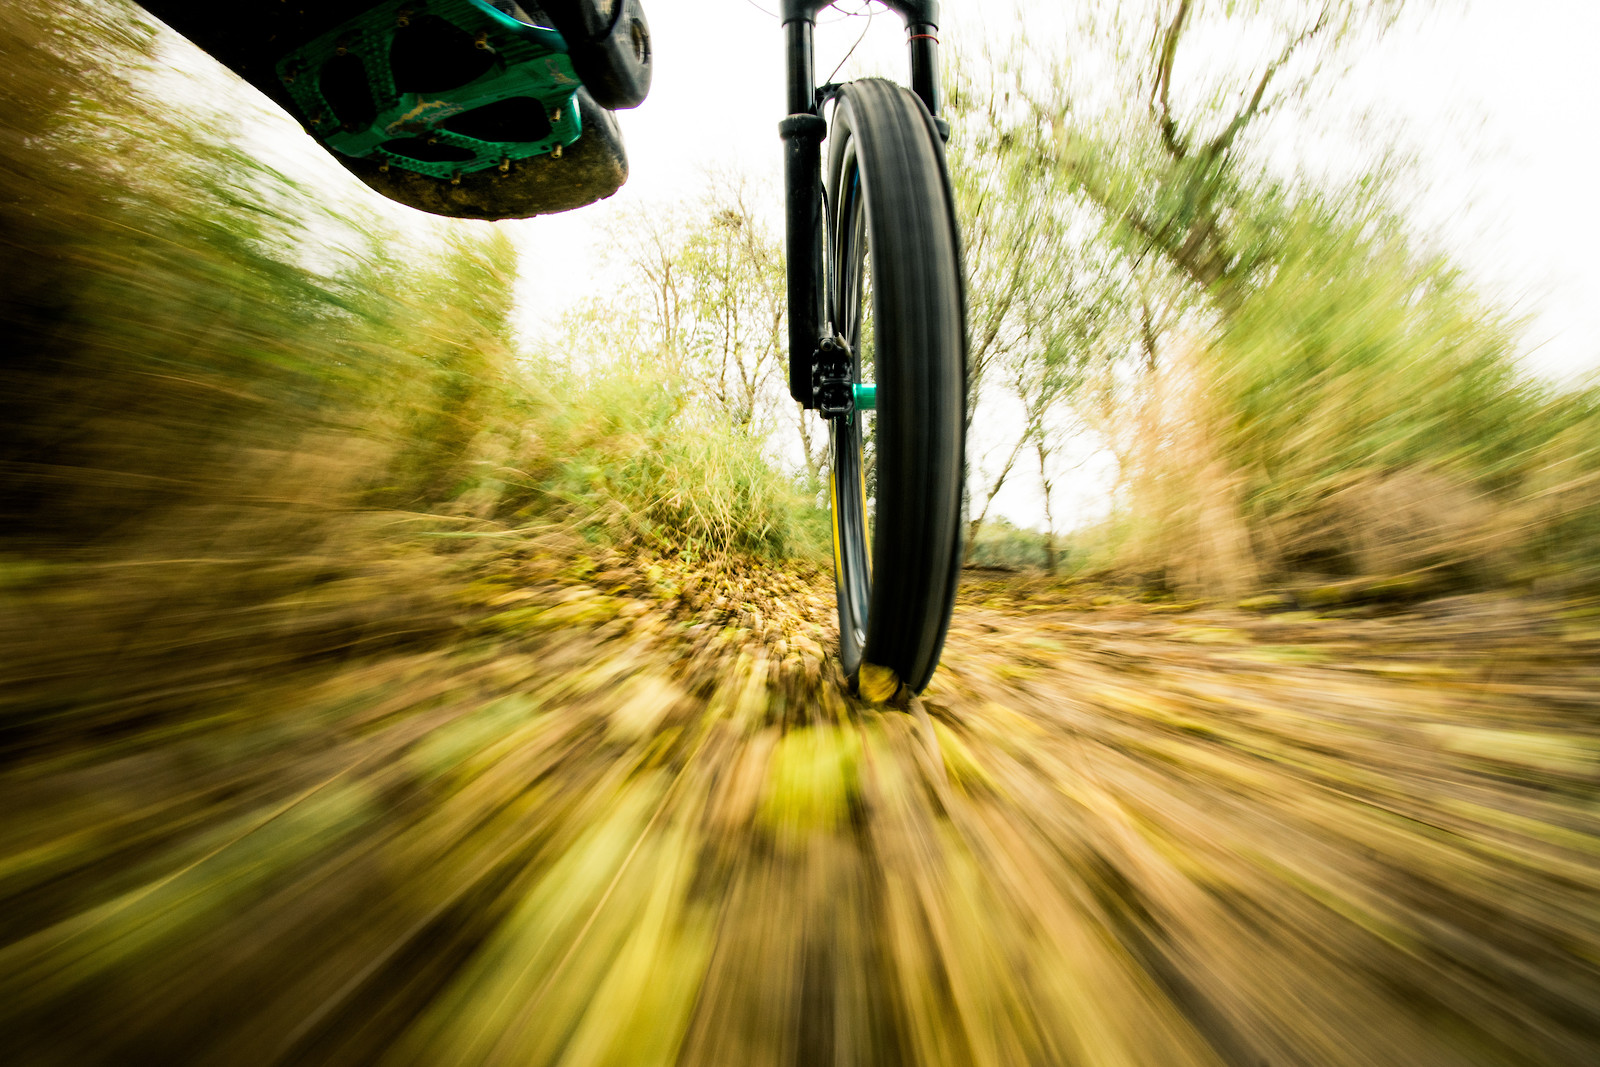 Trails paved with gold leaf - carbonmsc - Mountain Biking Pictures - Vital MTB